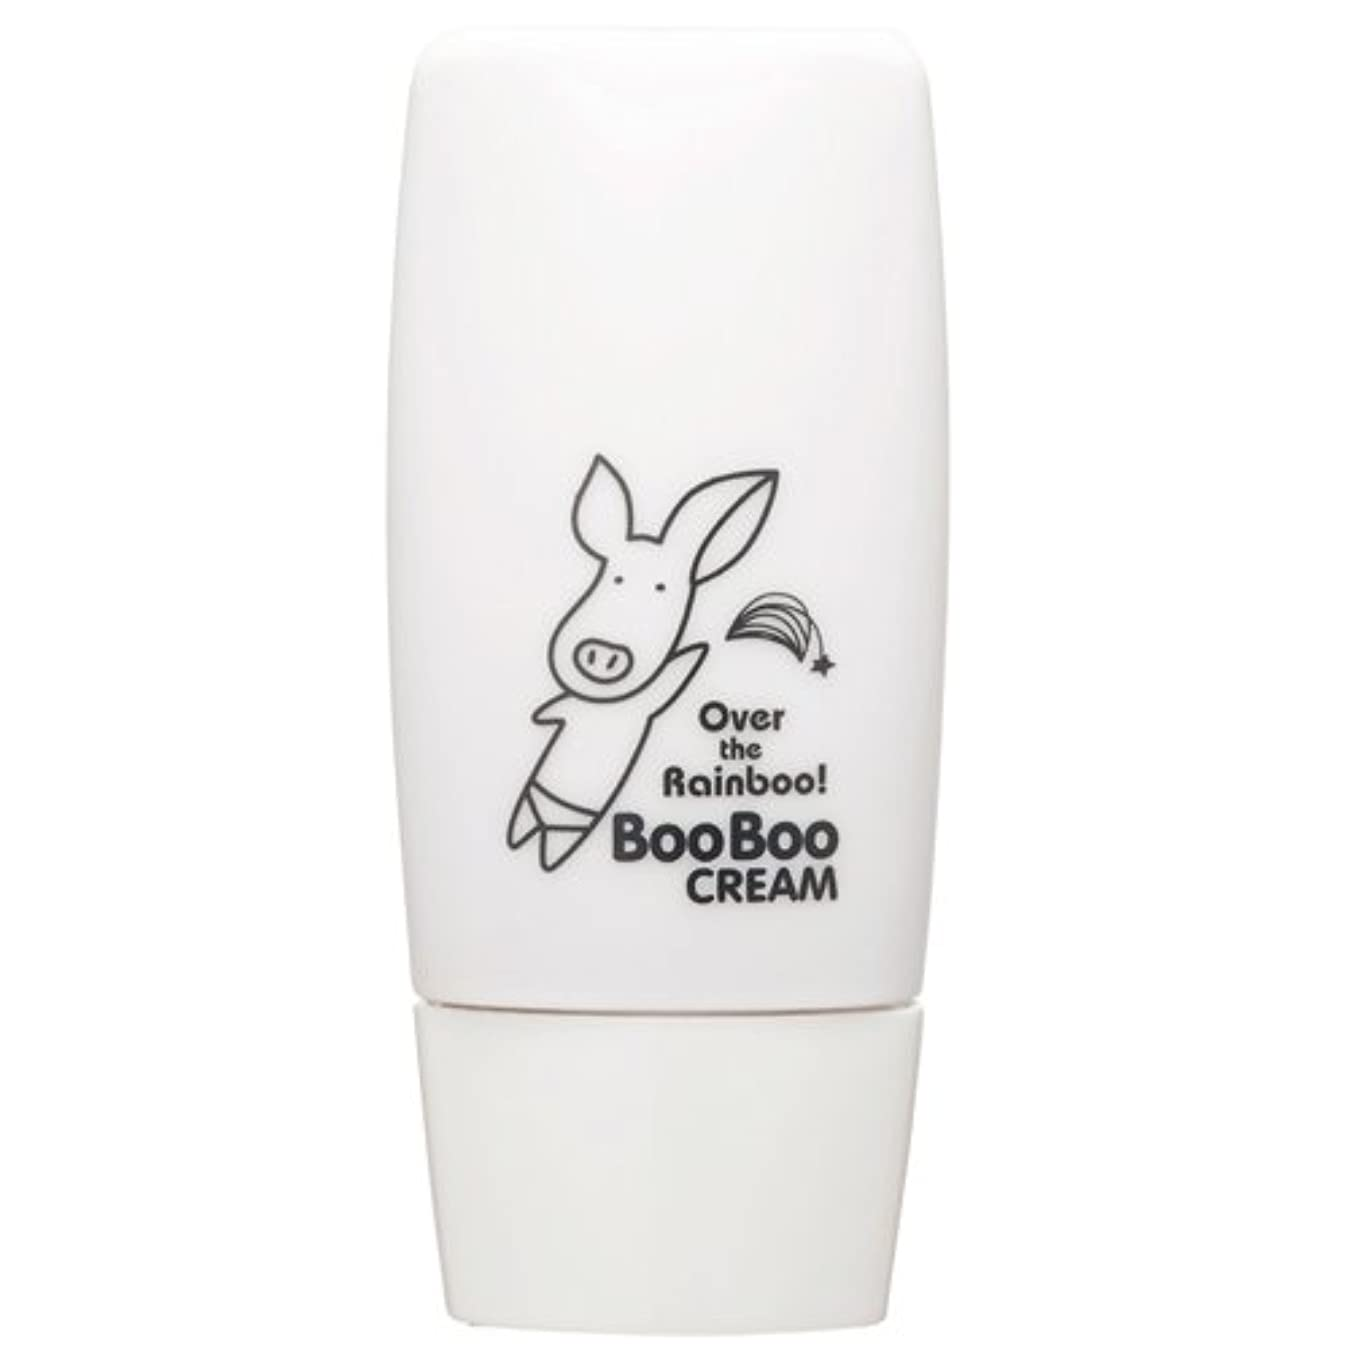 提唱する預言者猟犬Over the Rainboo! Boo Boo CREAM